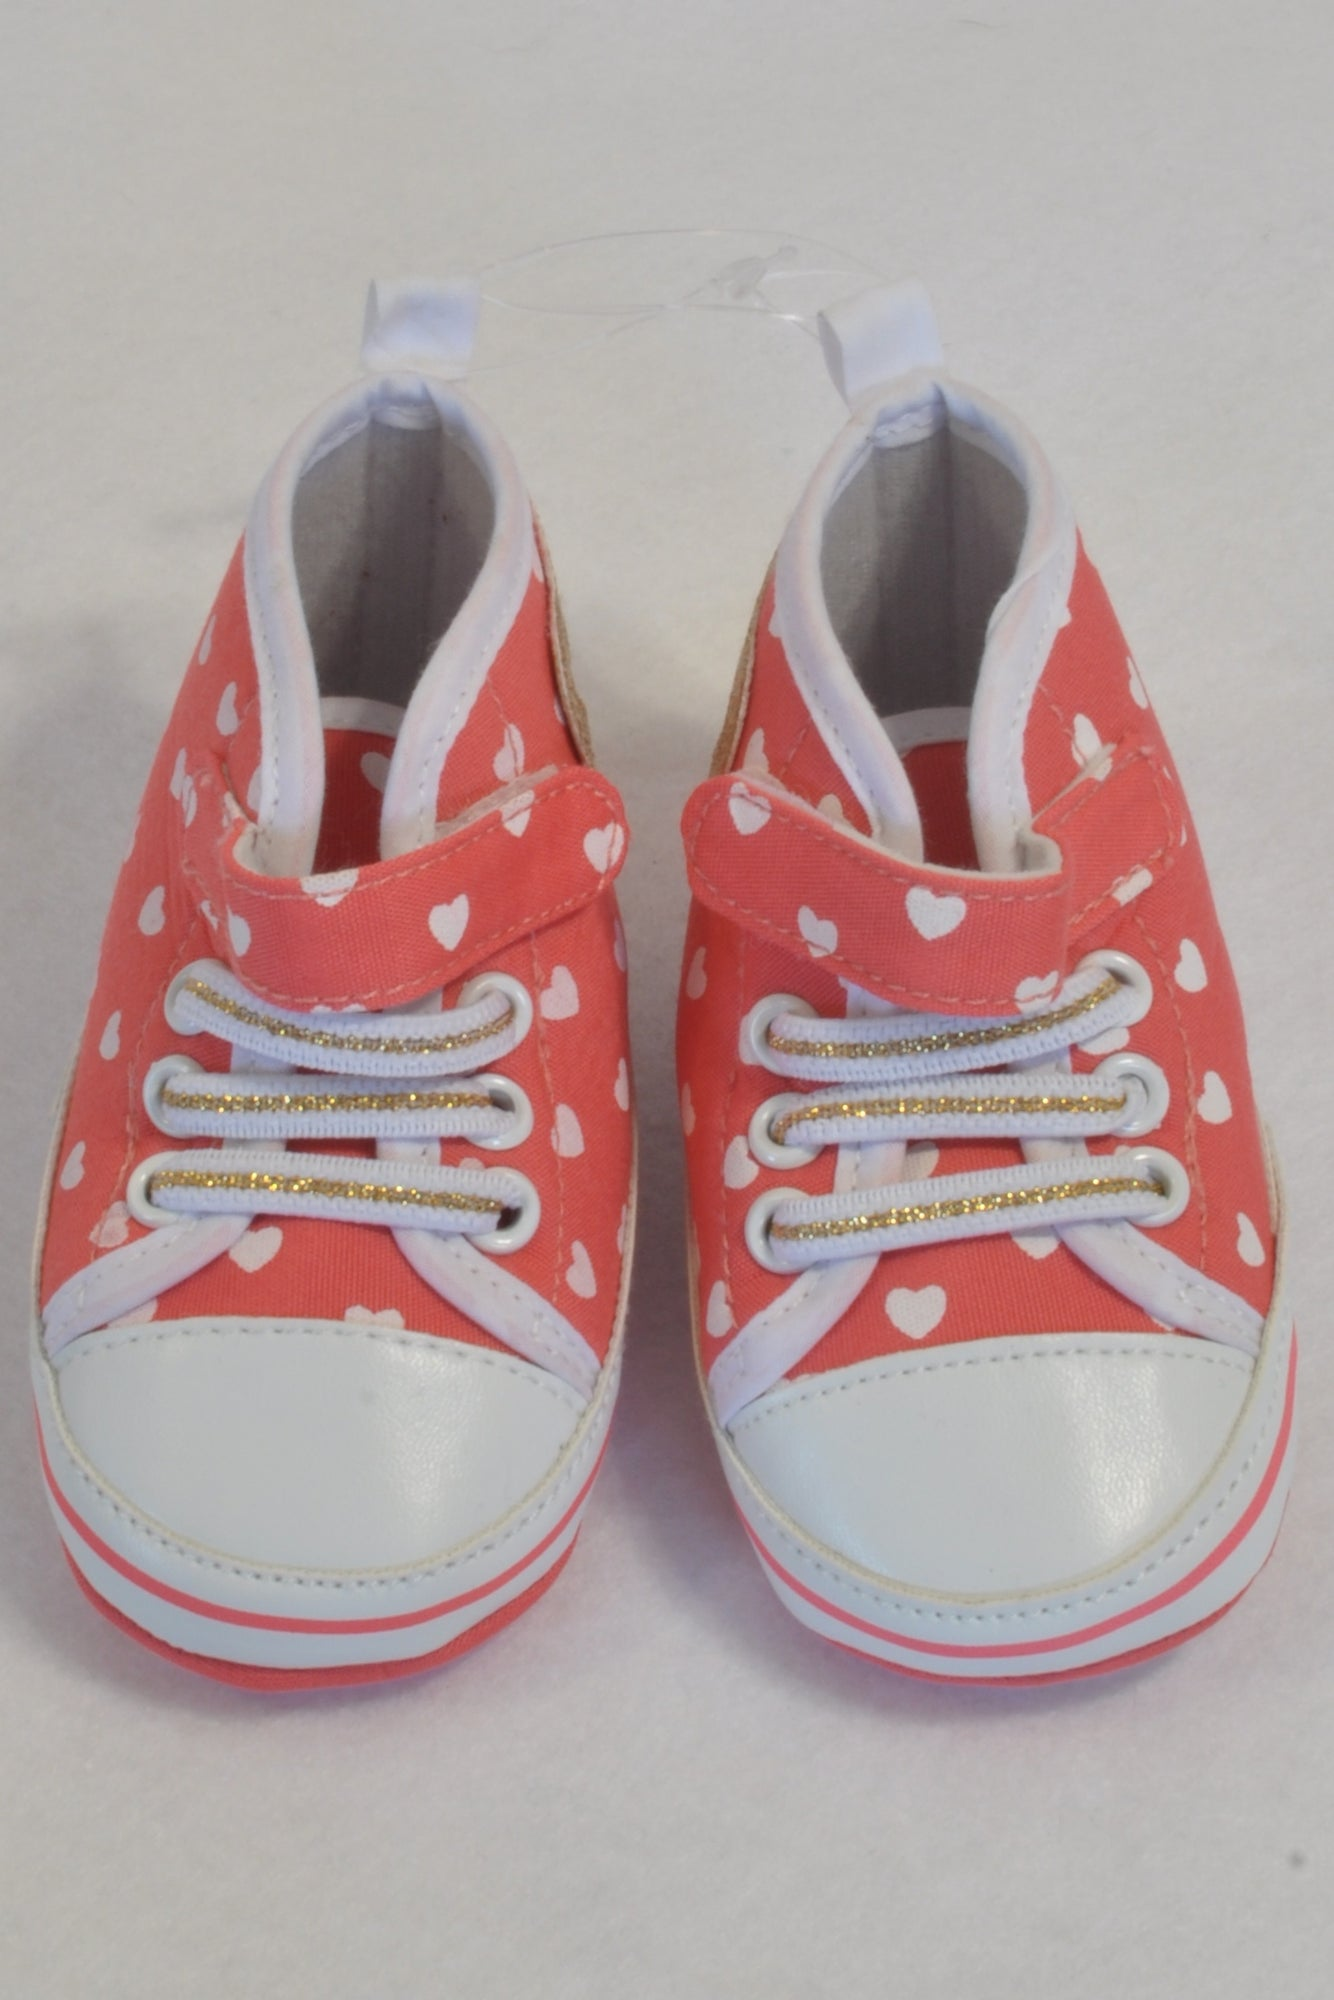 New Ackermans Coral Heart Hightop Shoes Girls 3-6 months